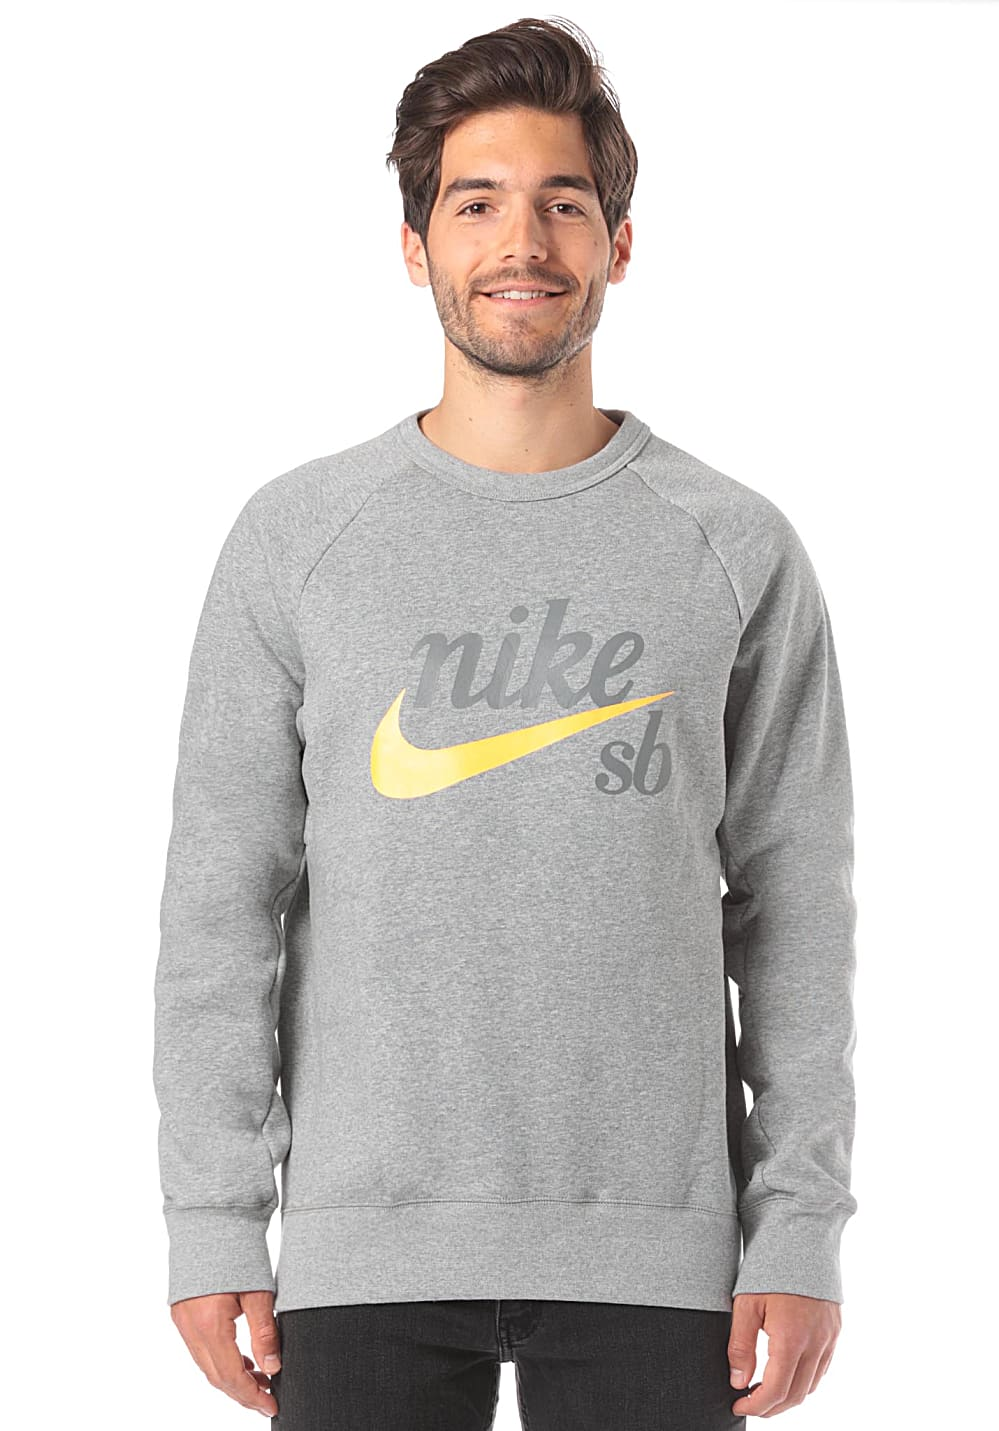 reputable site outlet online special section NIKE SB Top Icon Crew GFX Heritage - Sweatshirt für Herren - Grau